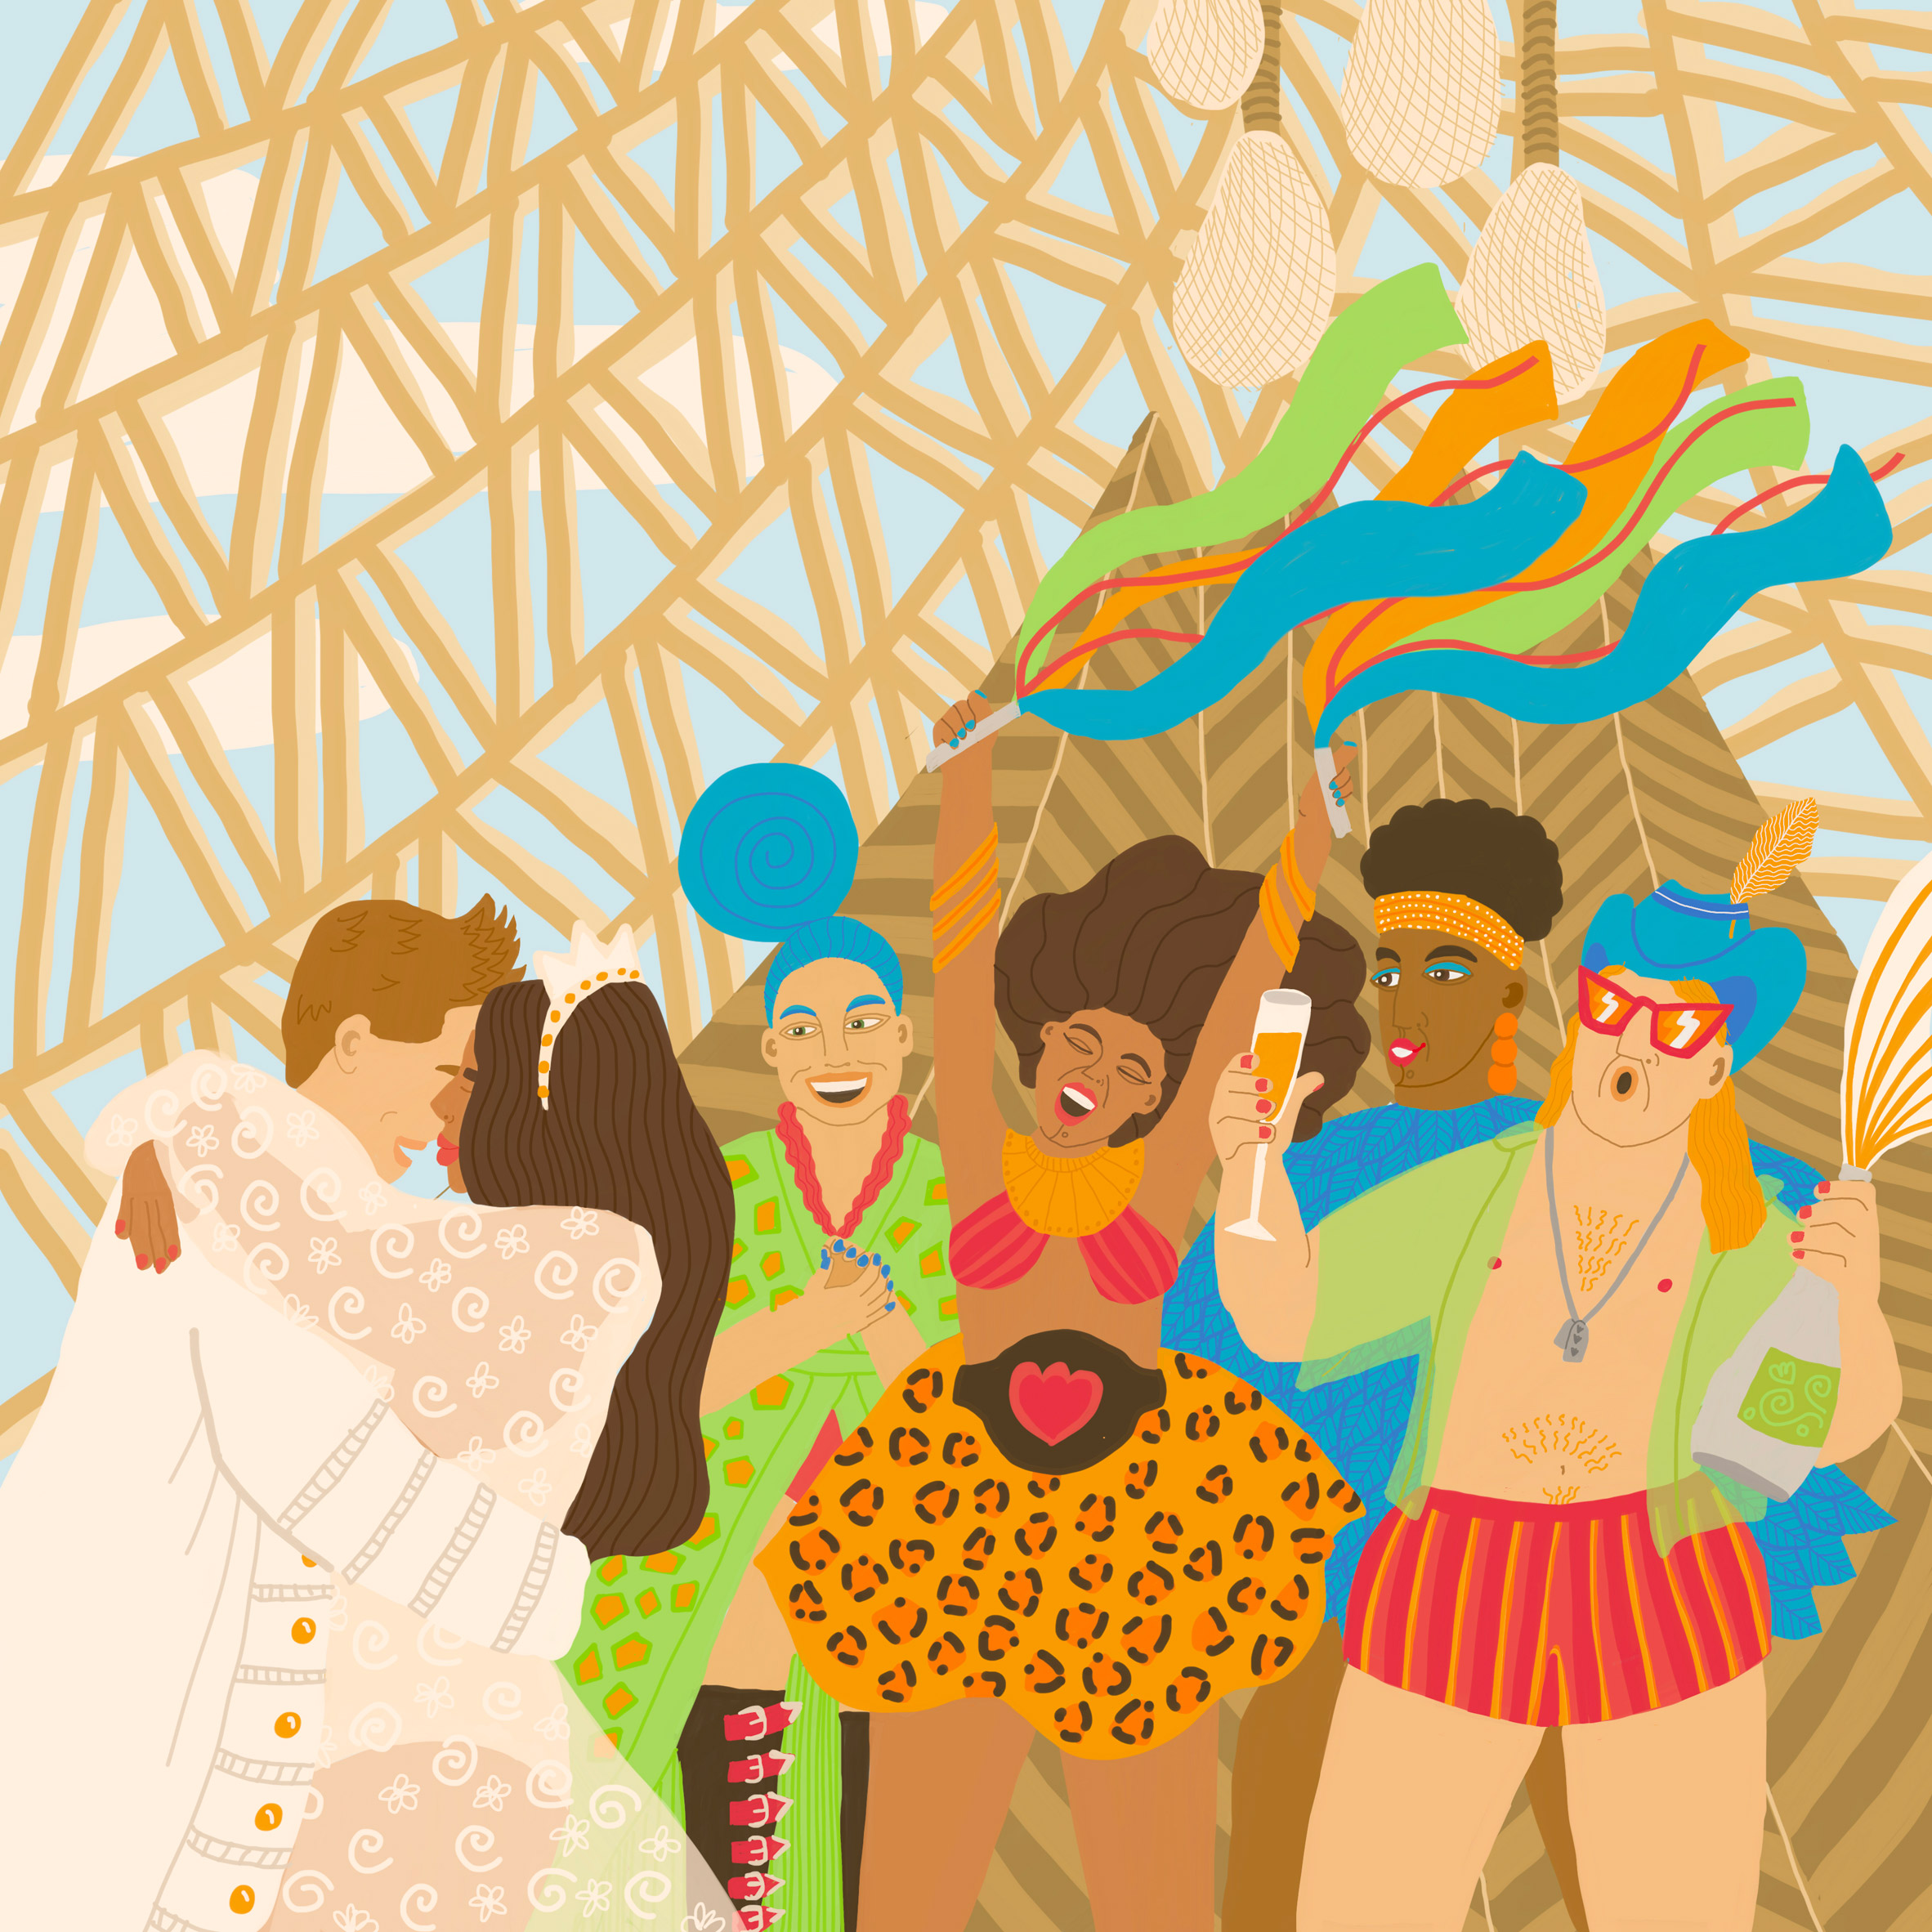 An illustration of people dancing at a wedding